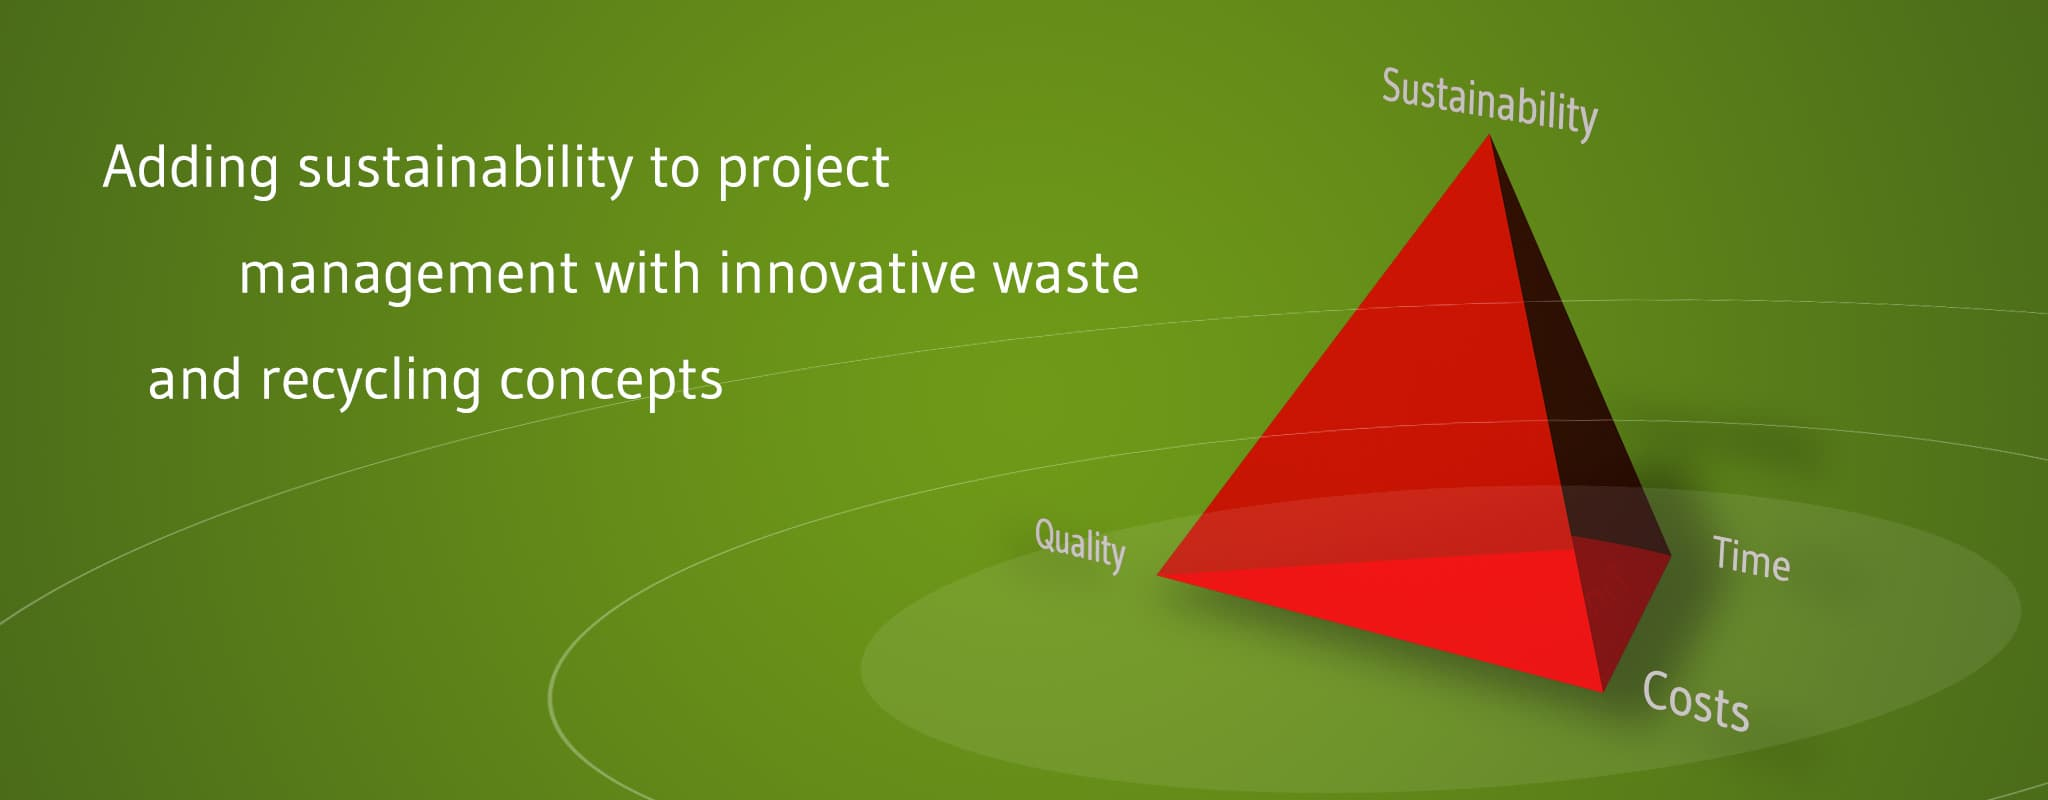 Adding value to projects with sustainable mineral waste solutions